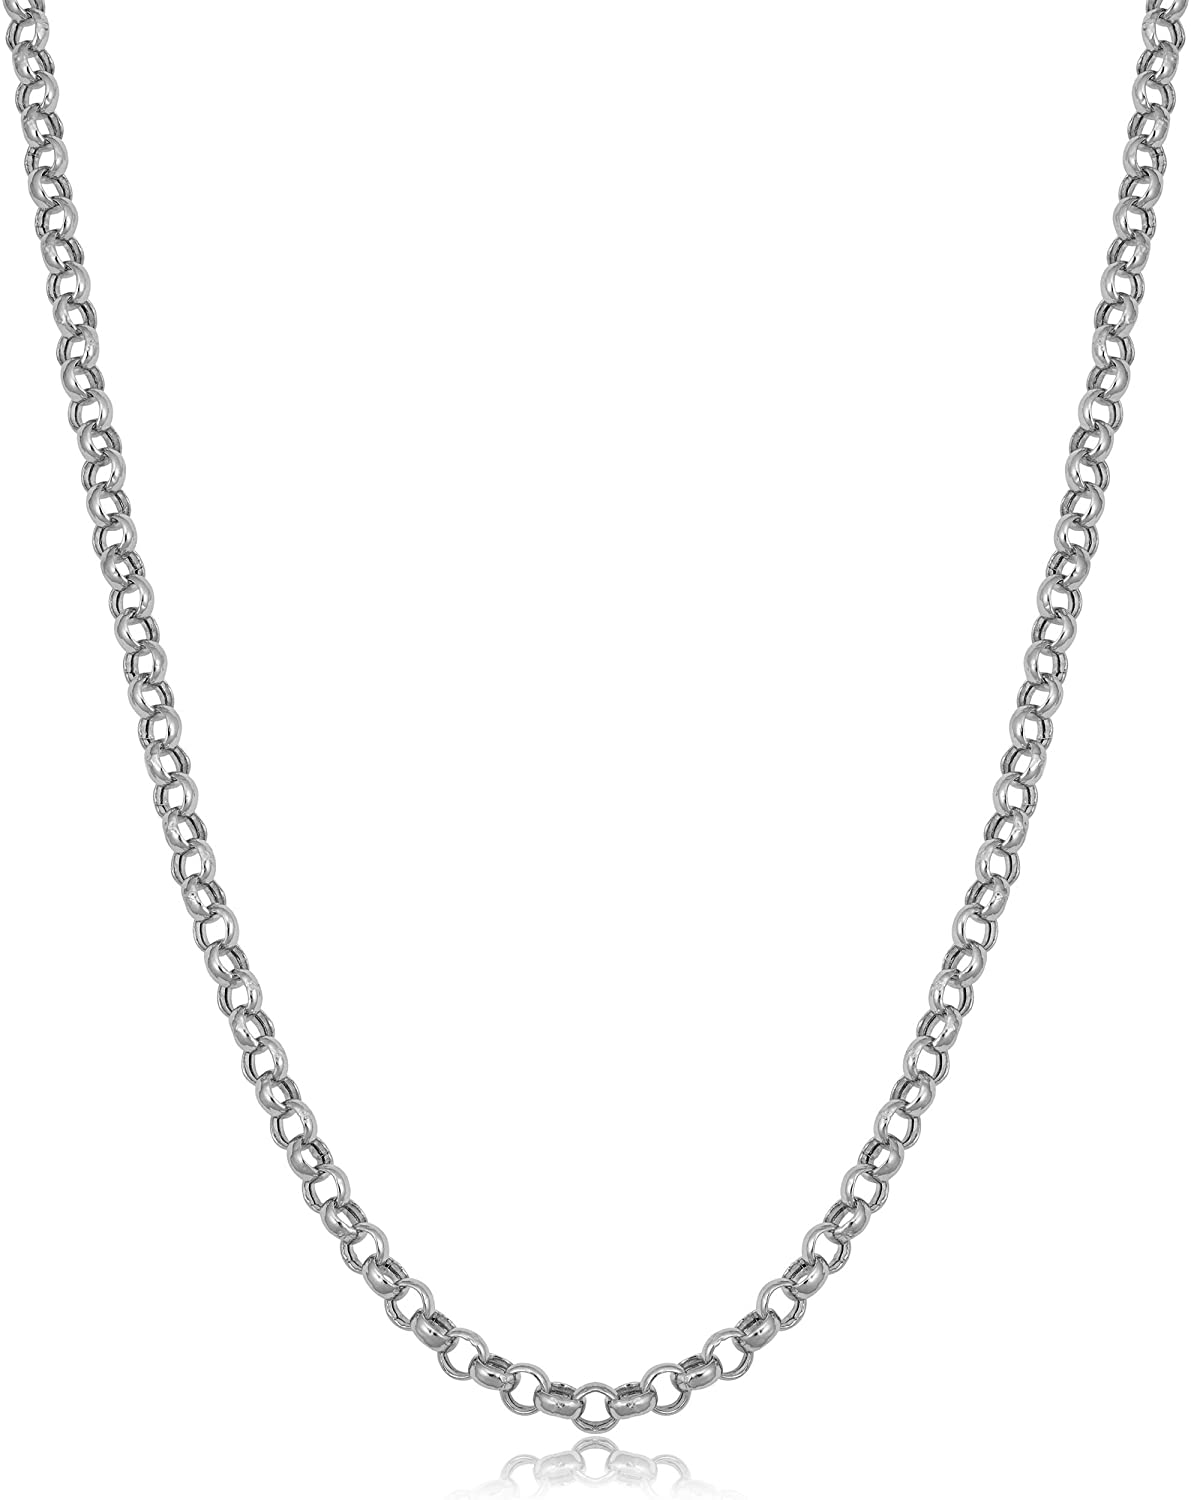 KoolJewelry 14k White Gold 3.2 MM Rolo Chain Necklace (16, 18, 20 or 24 inch)